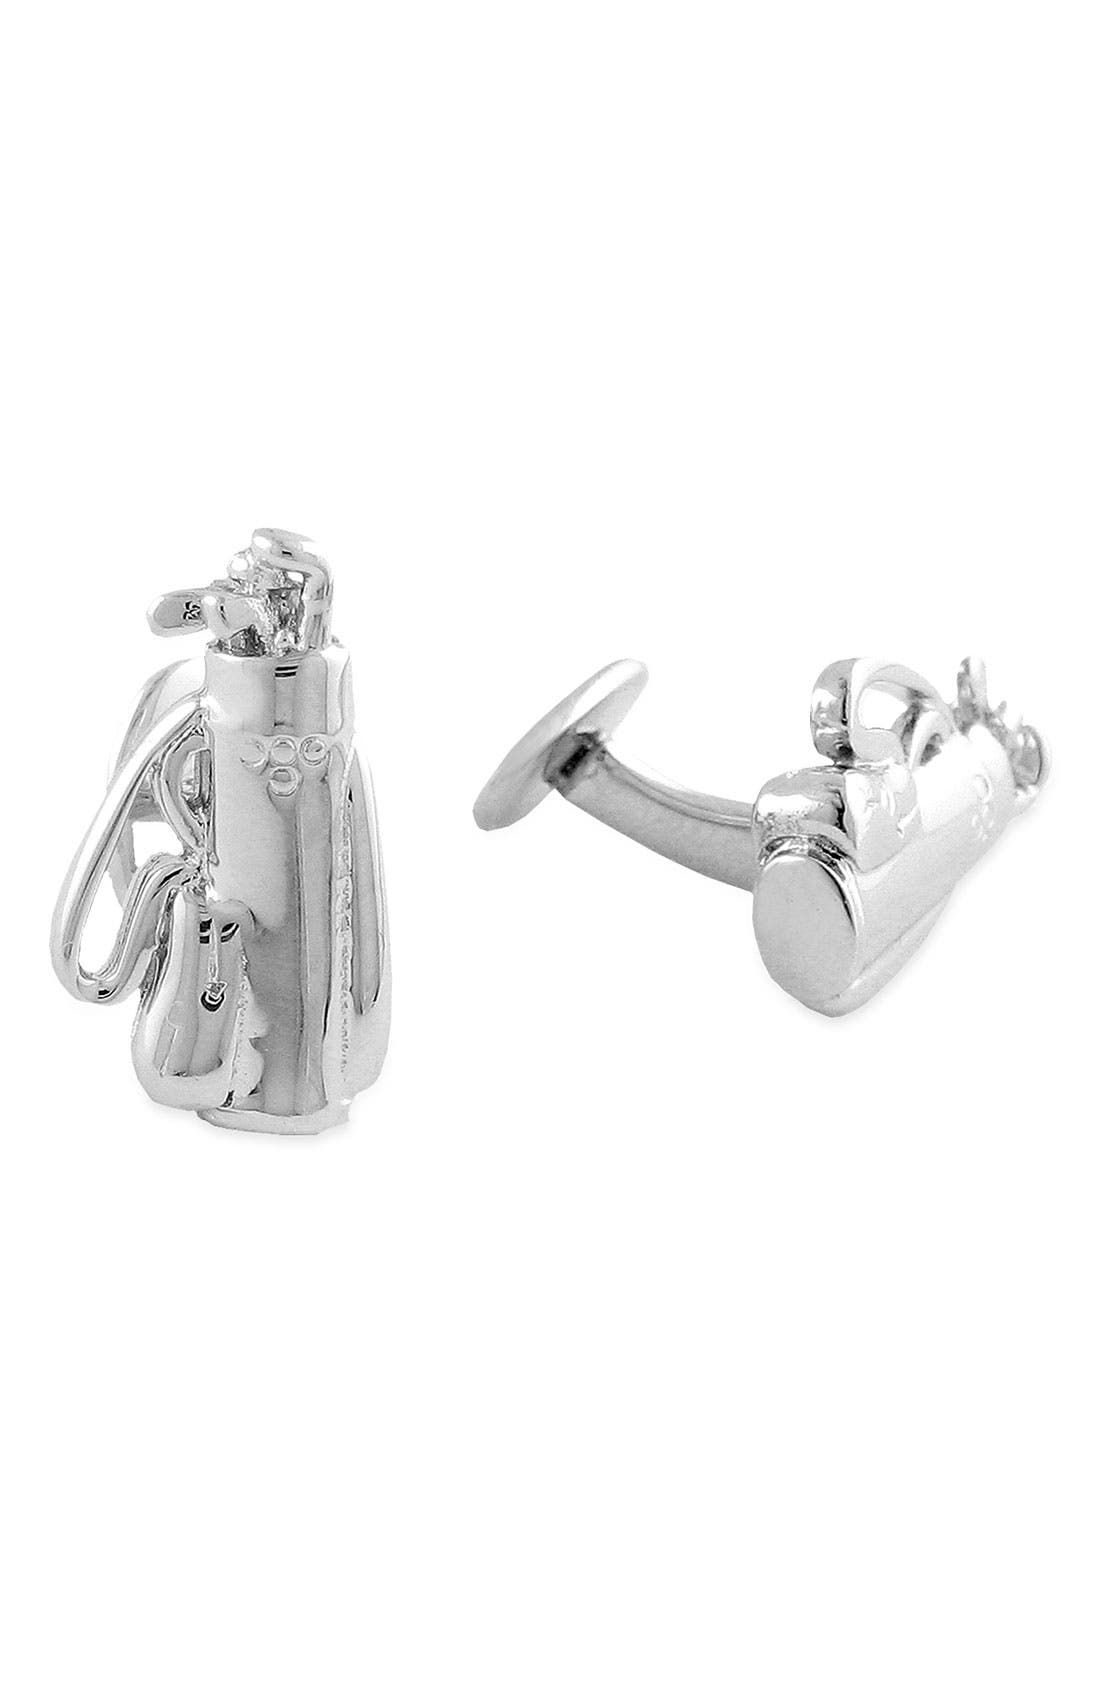 Alternate Image 1 Selected - David Donahue 'Golf' Sterling Silver Cuff Links